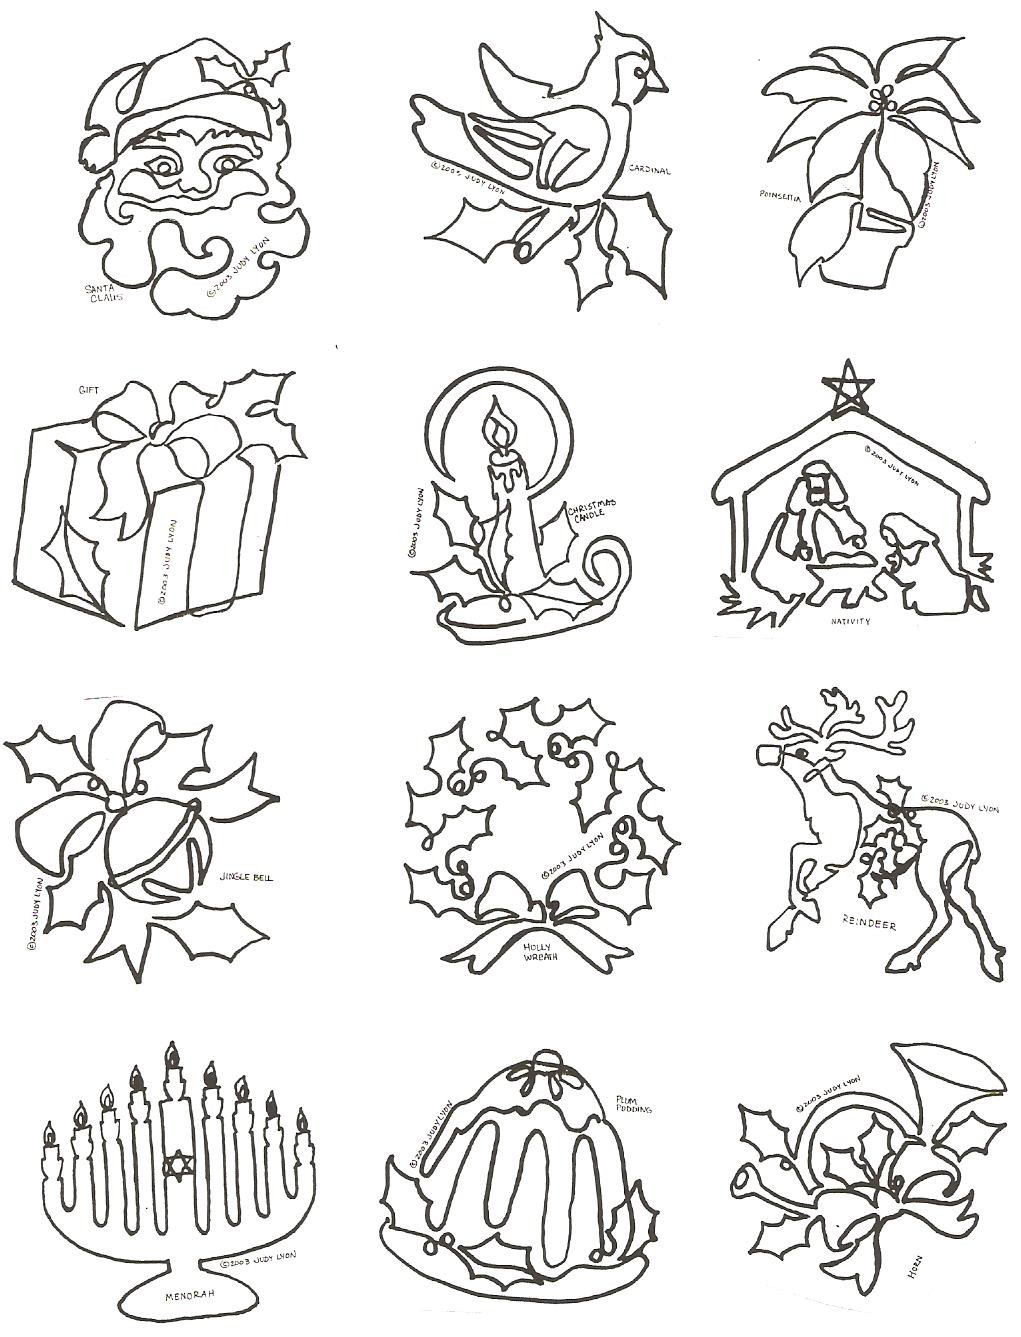 Symbols of the Season Block - SofSB - Collection of 12